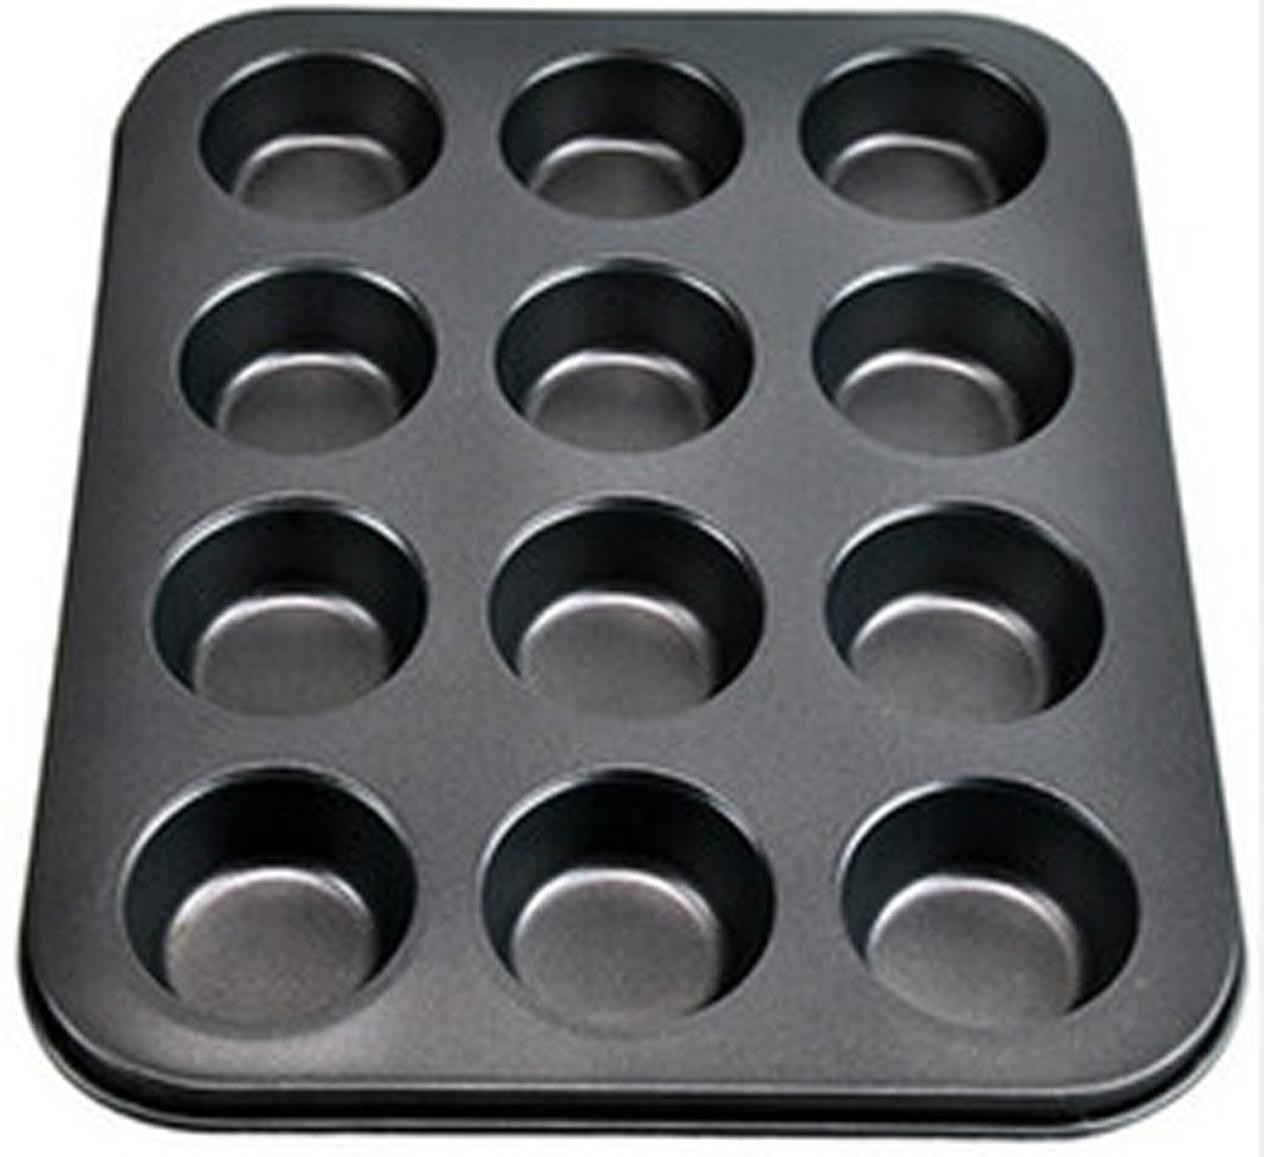 Nonstick Carbon Steel Muffin and Cupcake Pan - 12 Cups